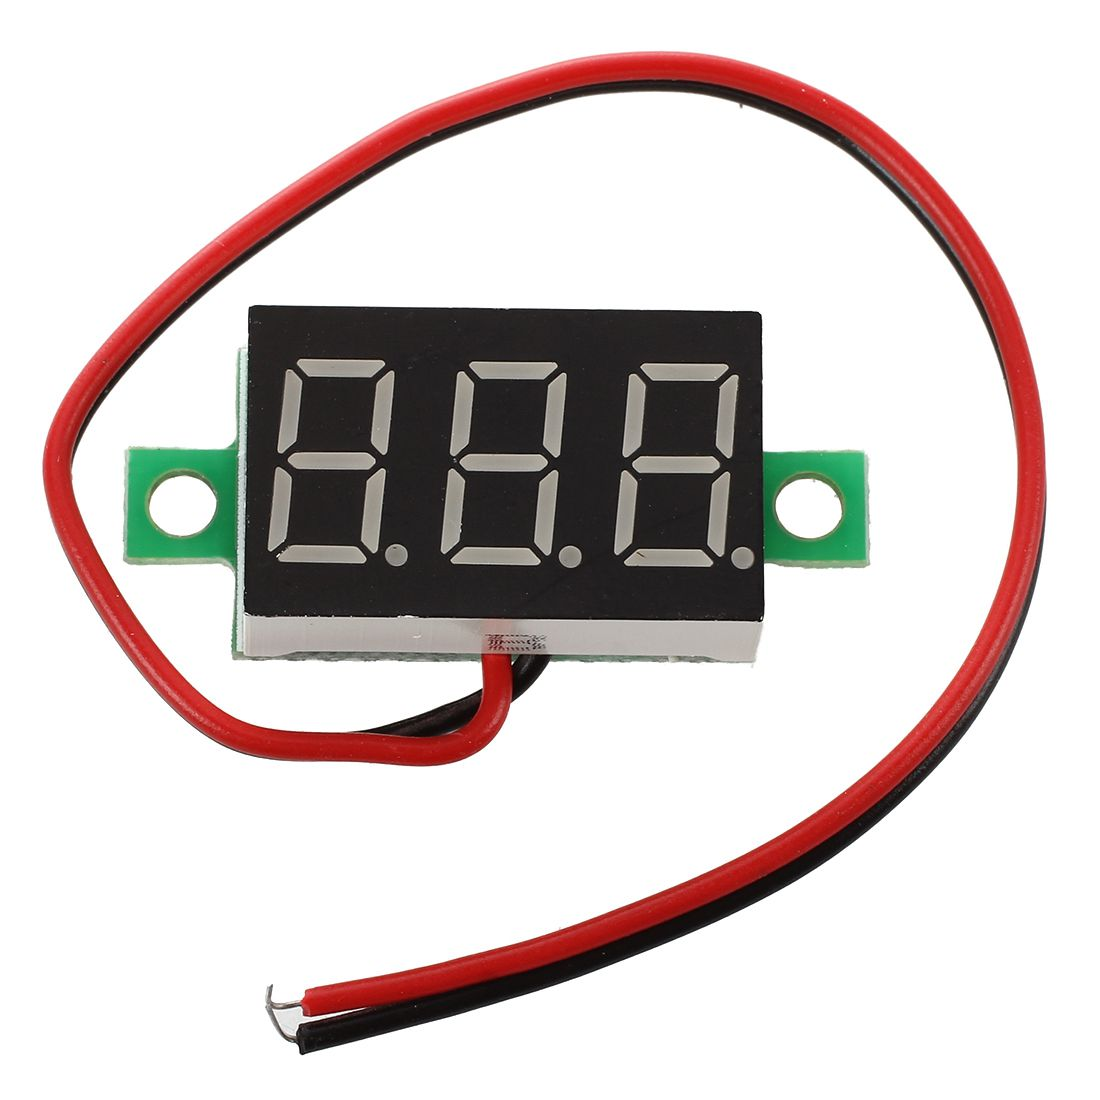 Digital Voltmeter Voltage Dc 0 32v Led Panel For Moto Metrer Schematic Diagram Of Dashboard In Volt Meters From Automobiles Motorcycles On Alibaba Group